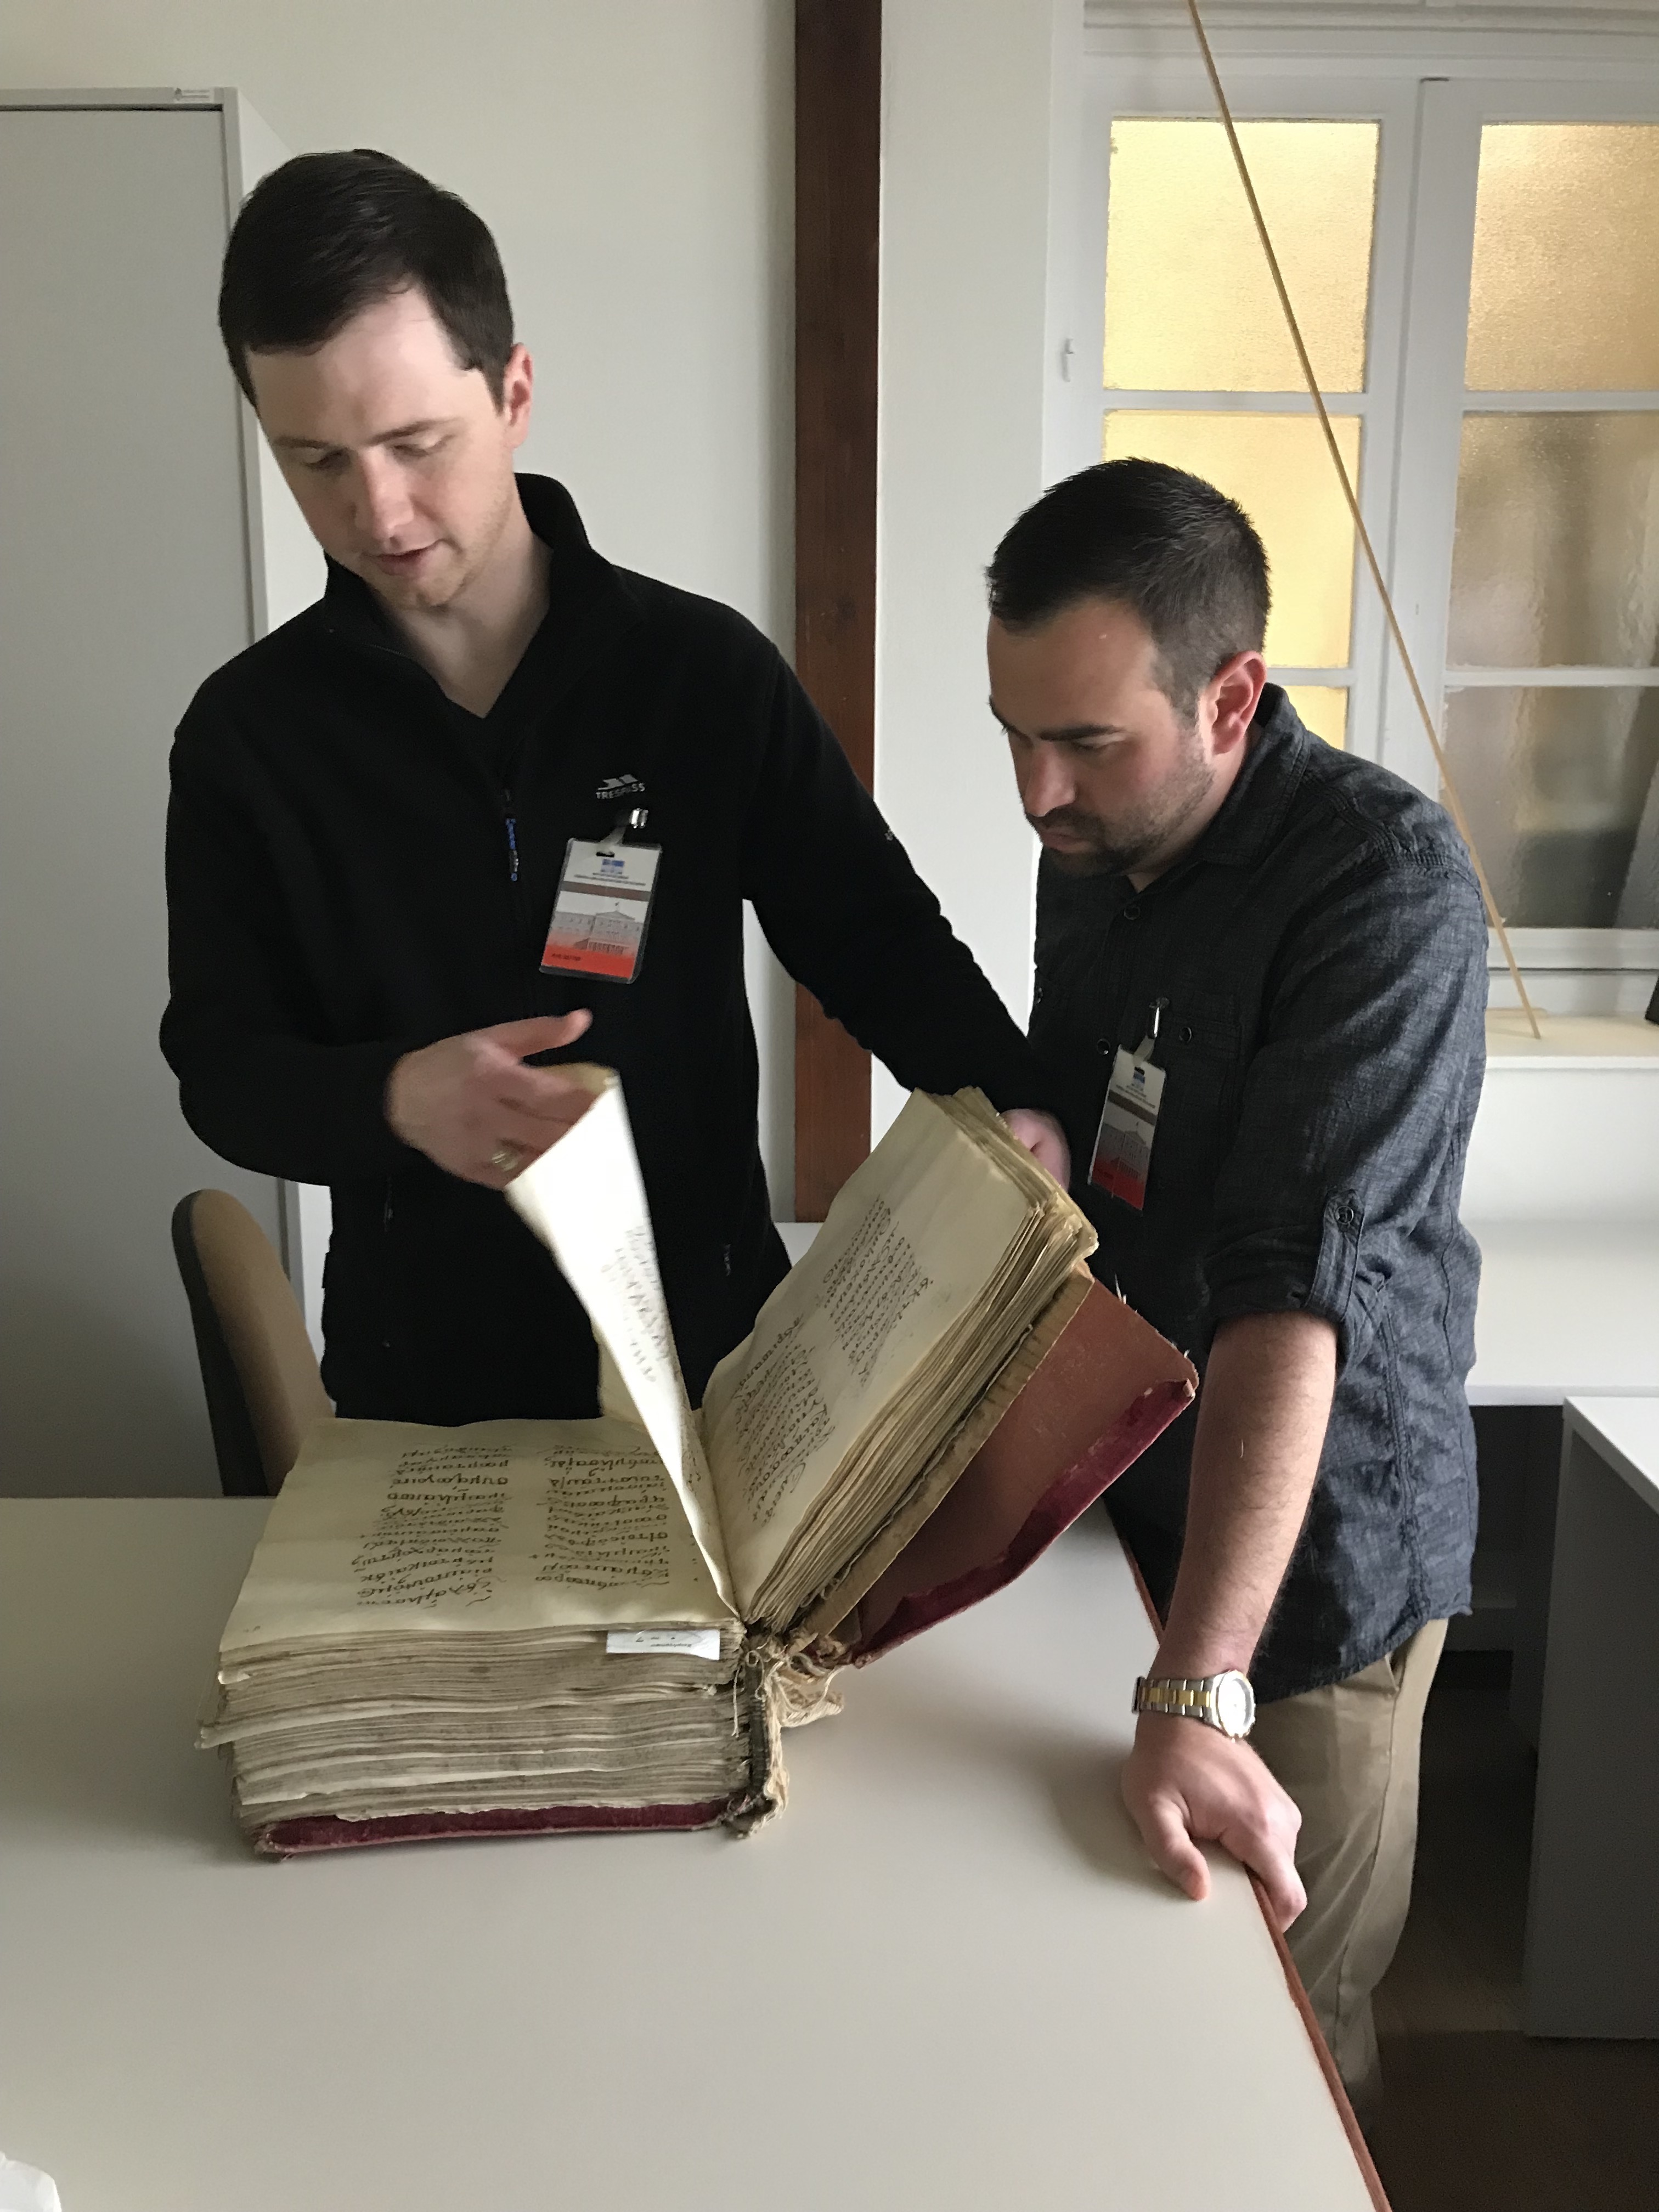 Rob and Jacob examining Lectionary 450